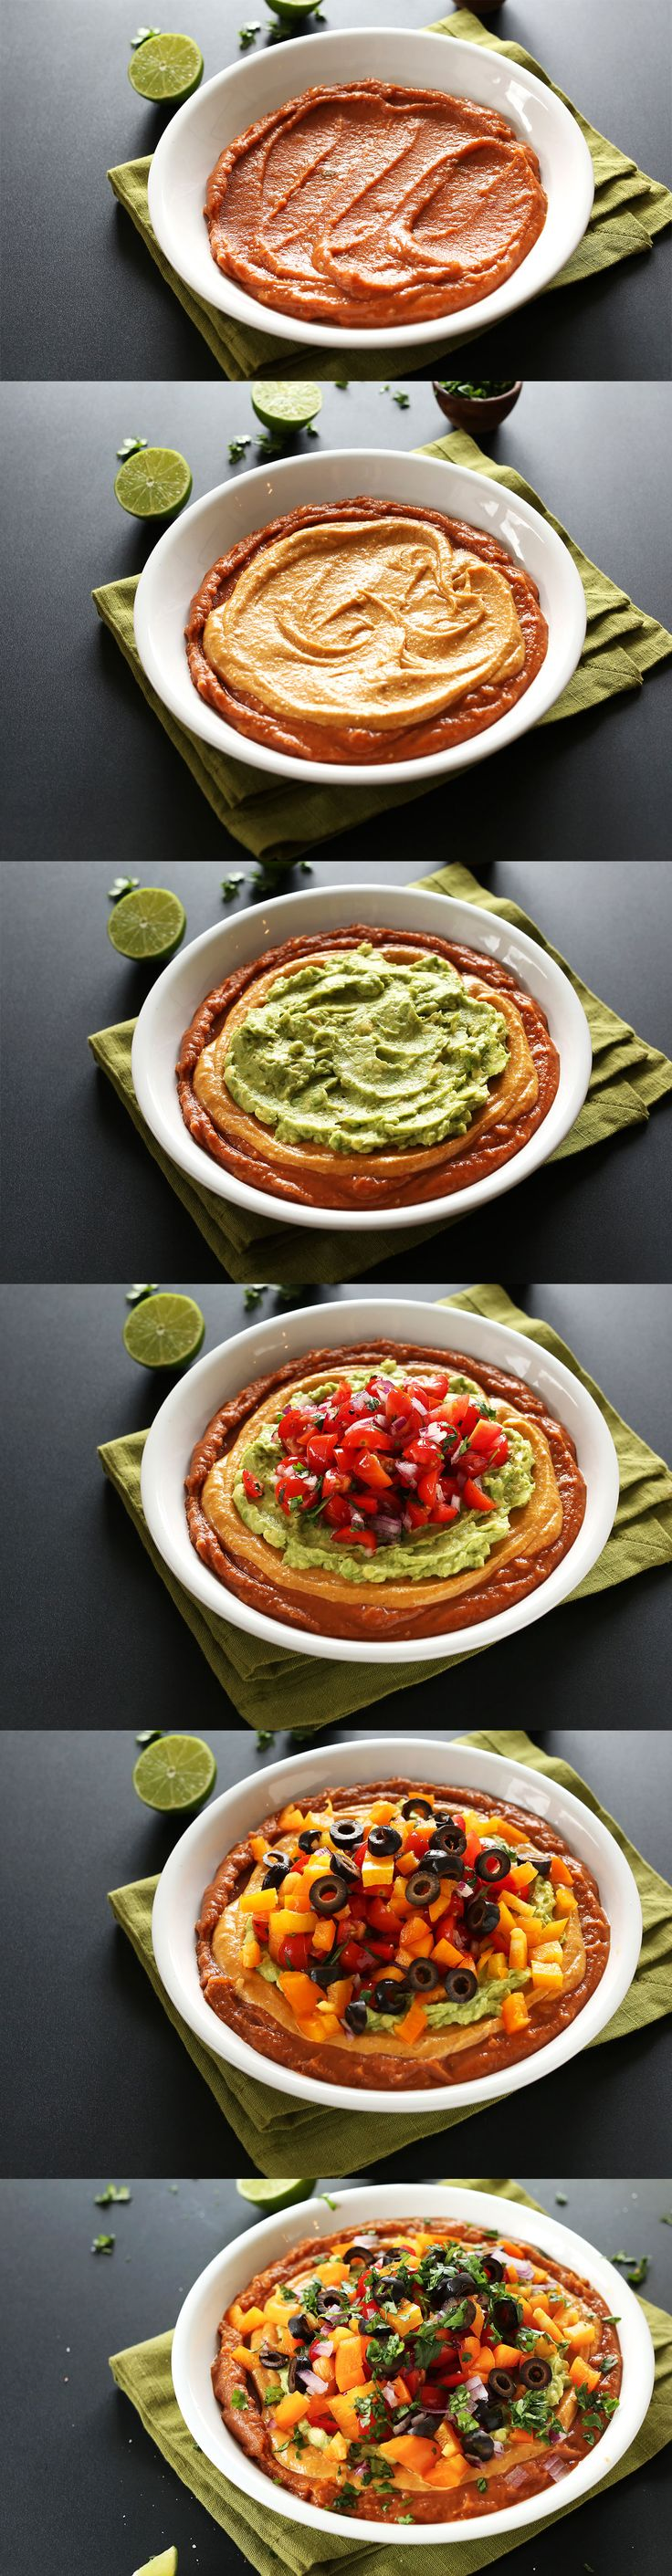 AMAZING 7 Layer Vegan Mexican Dip! Simple ingredients, and so healthy and satisfying | #vegan #glutenfree